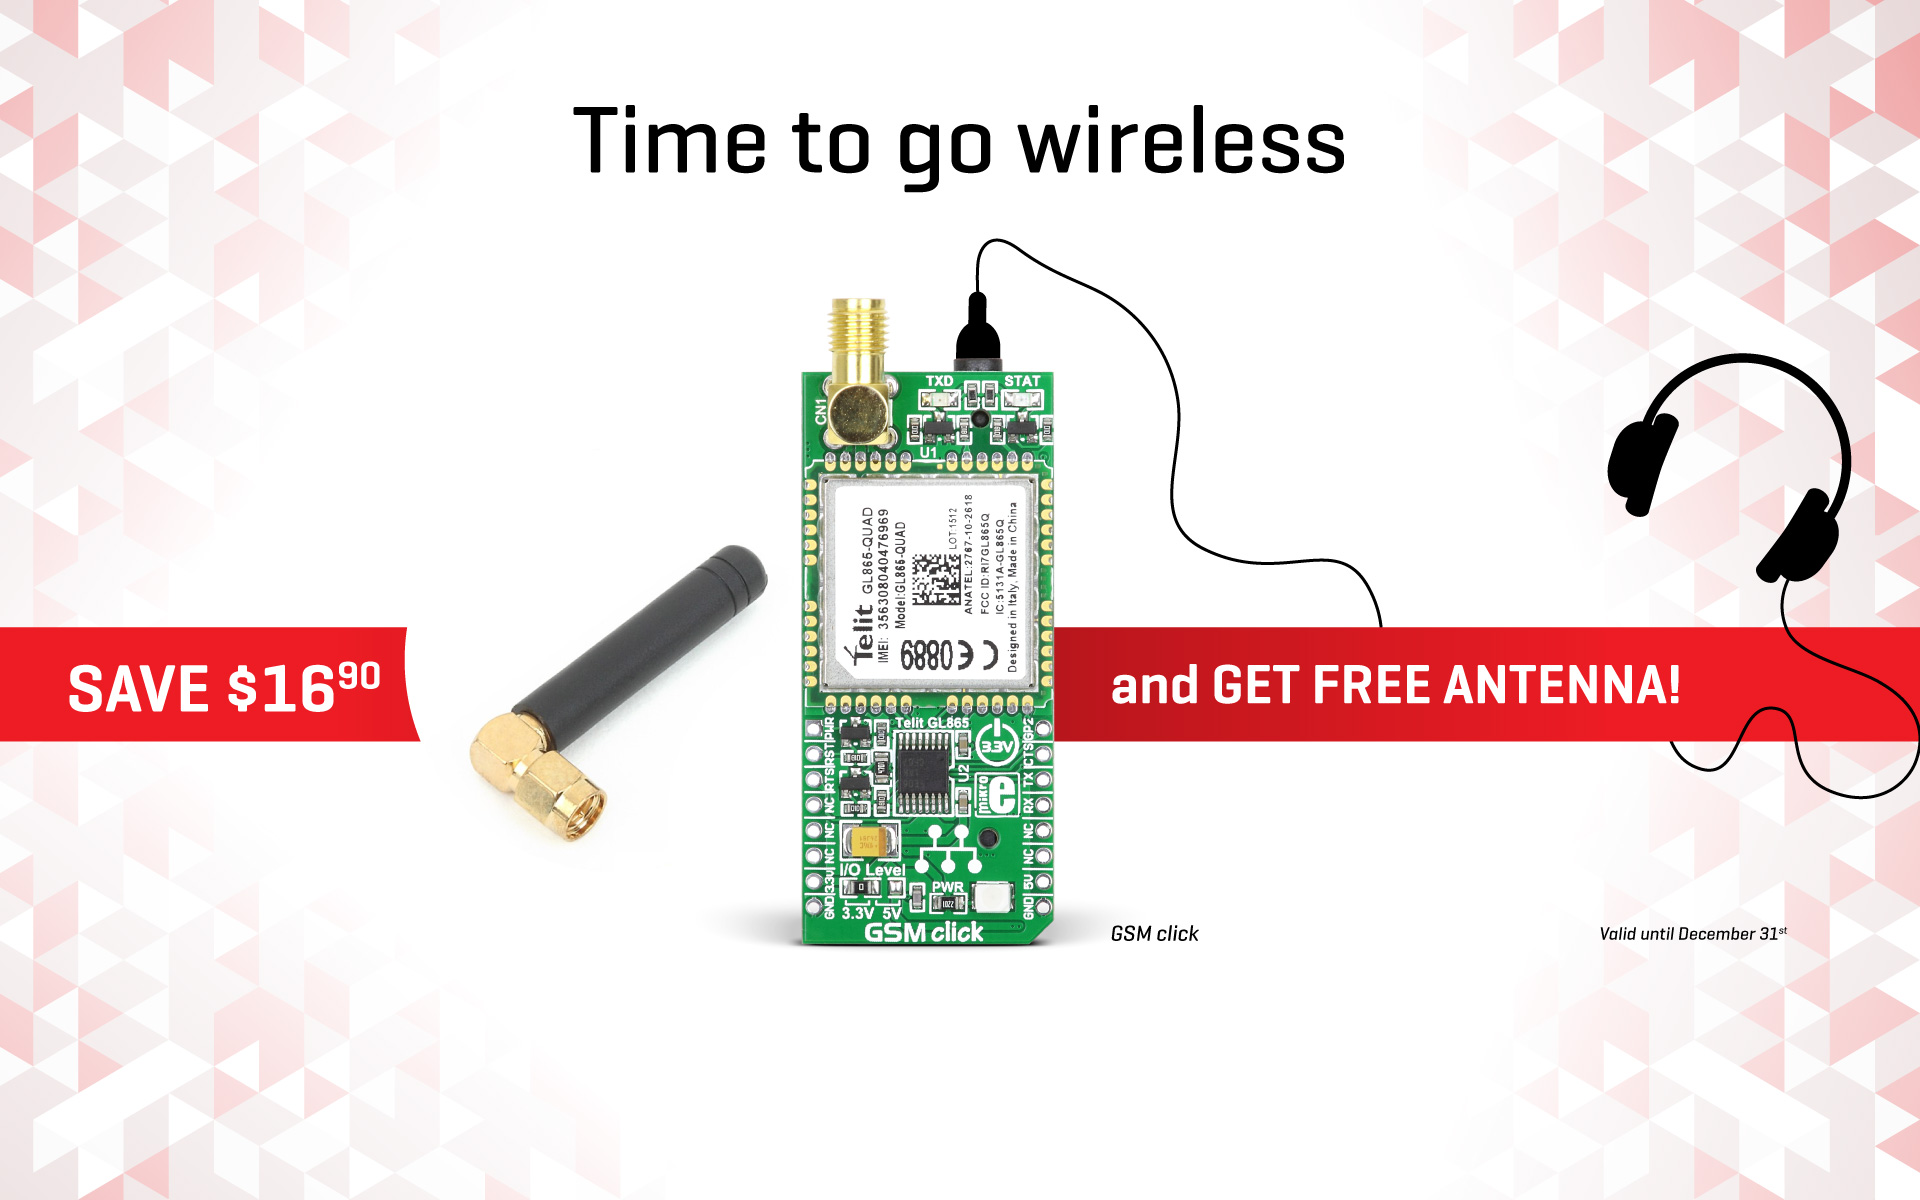 Special offer on the GSM click